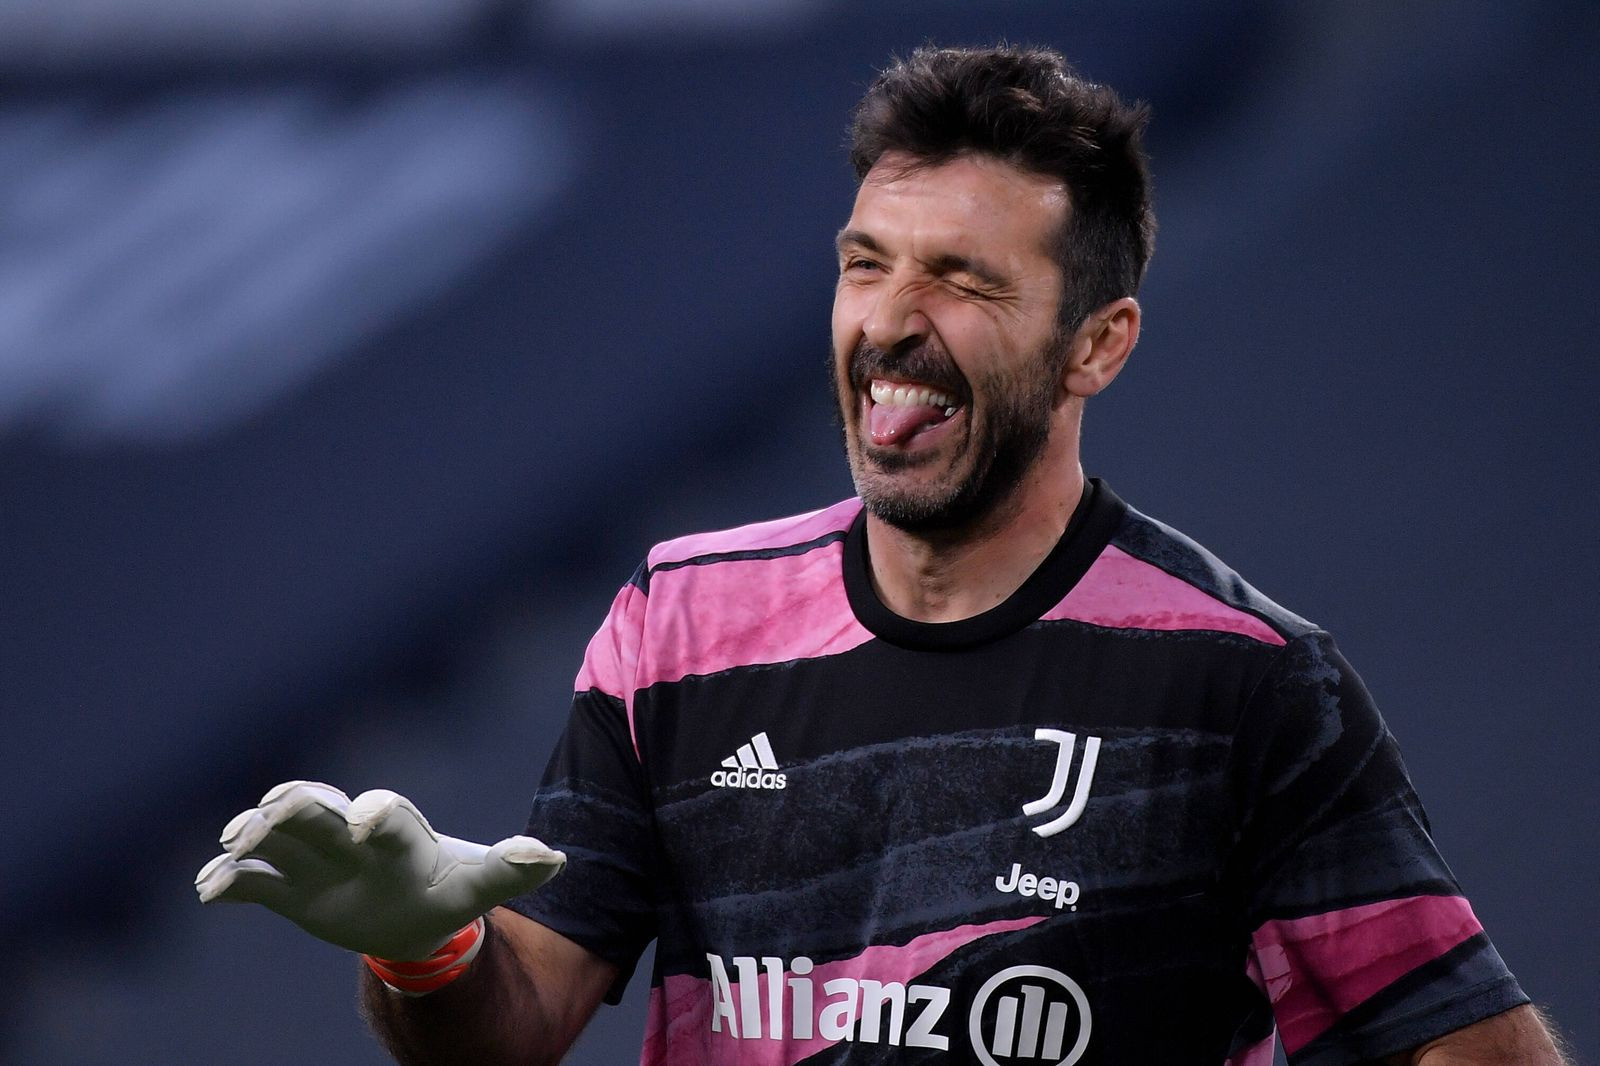 Gianluigi Buffon of Juventus FC reacts during he warm up prior to the Serie A football match between Juventus FC and Pa